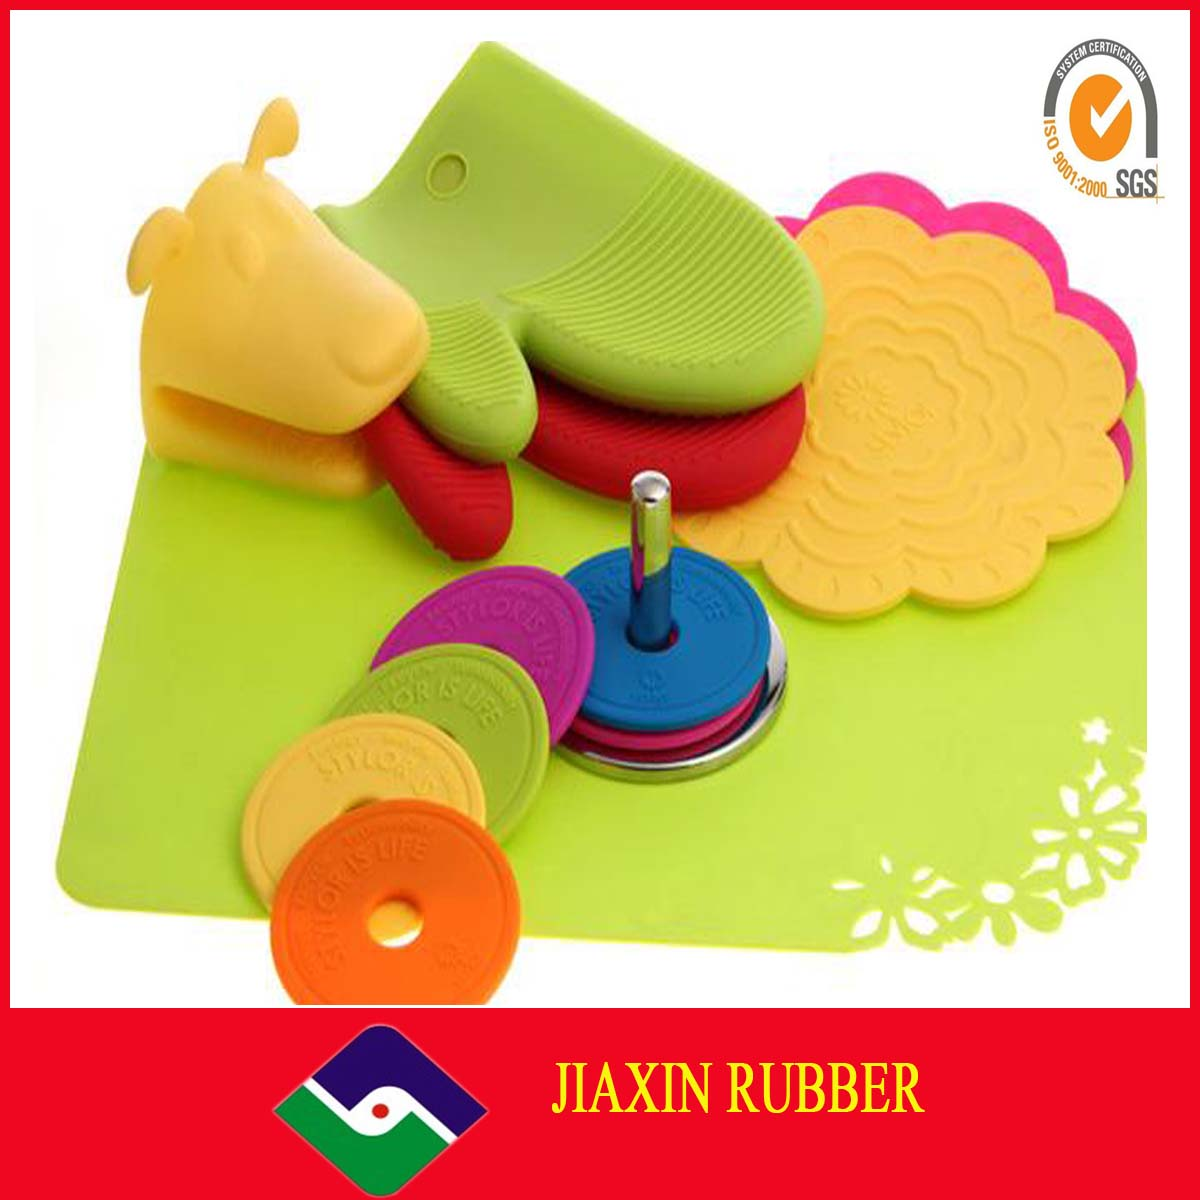 2014 hot selling silicone rubber kitchenware/ kitchen accessories gift set